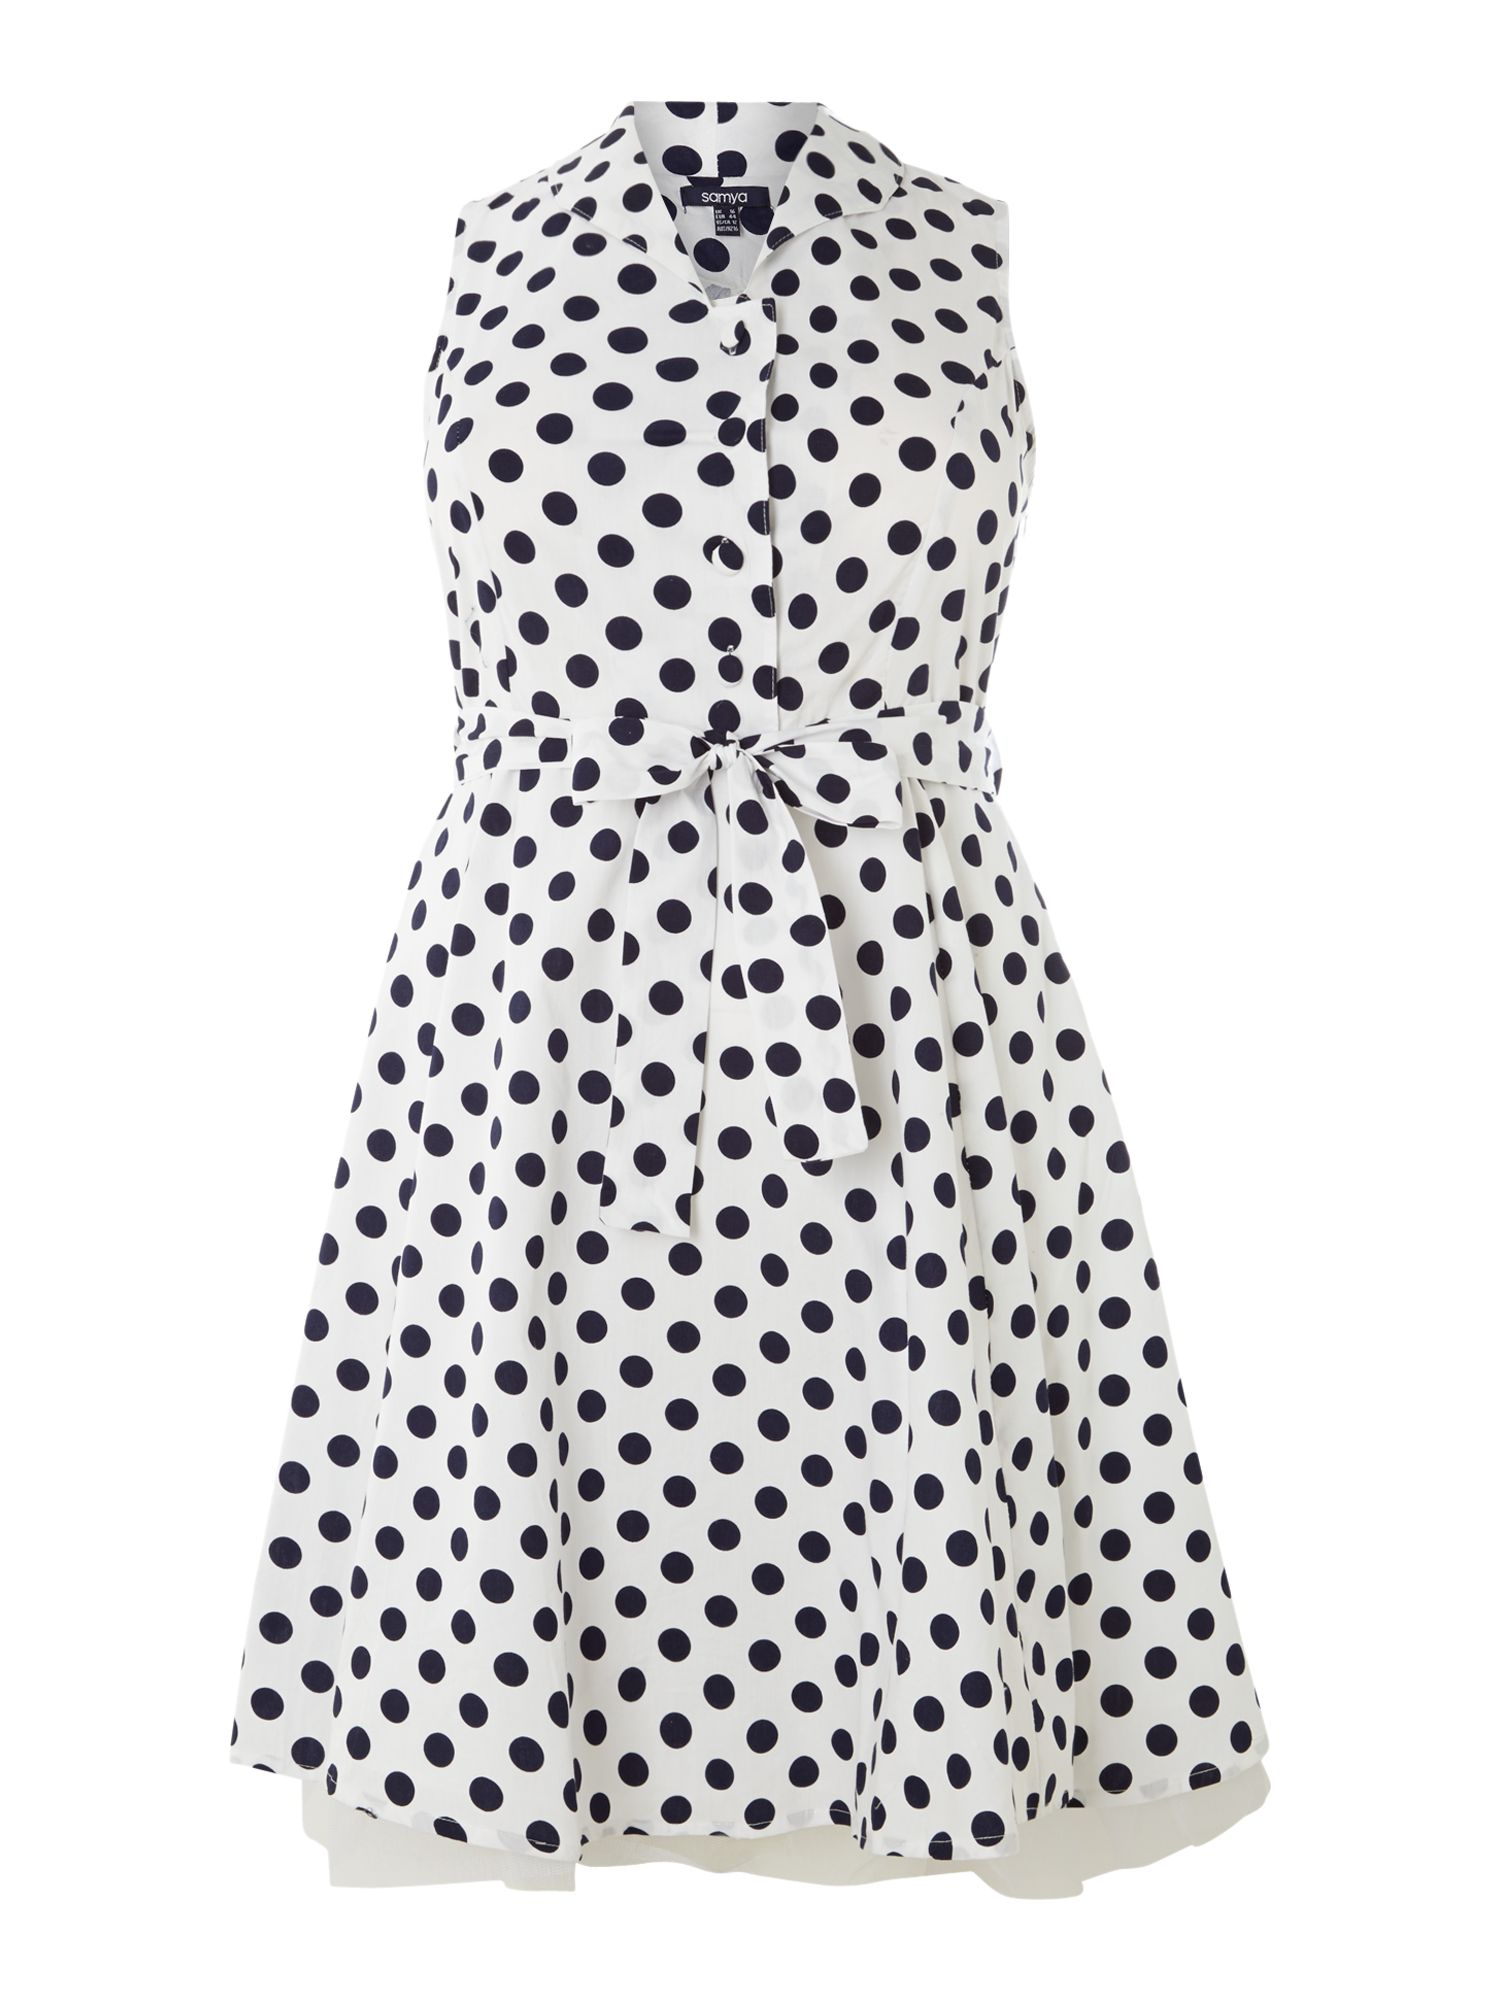 Polka dotted sleeveless dress